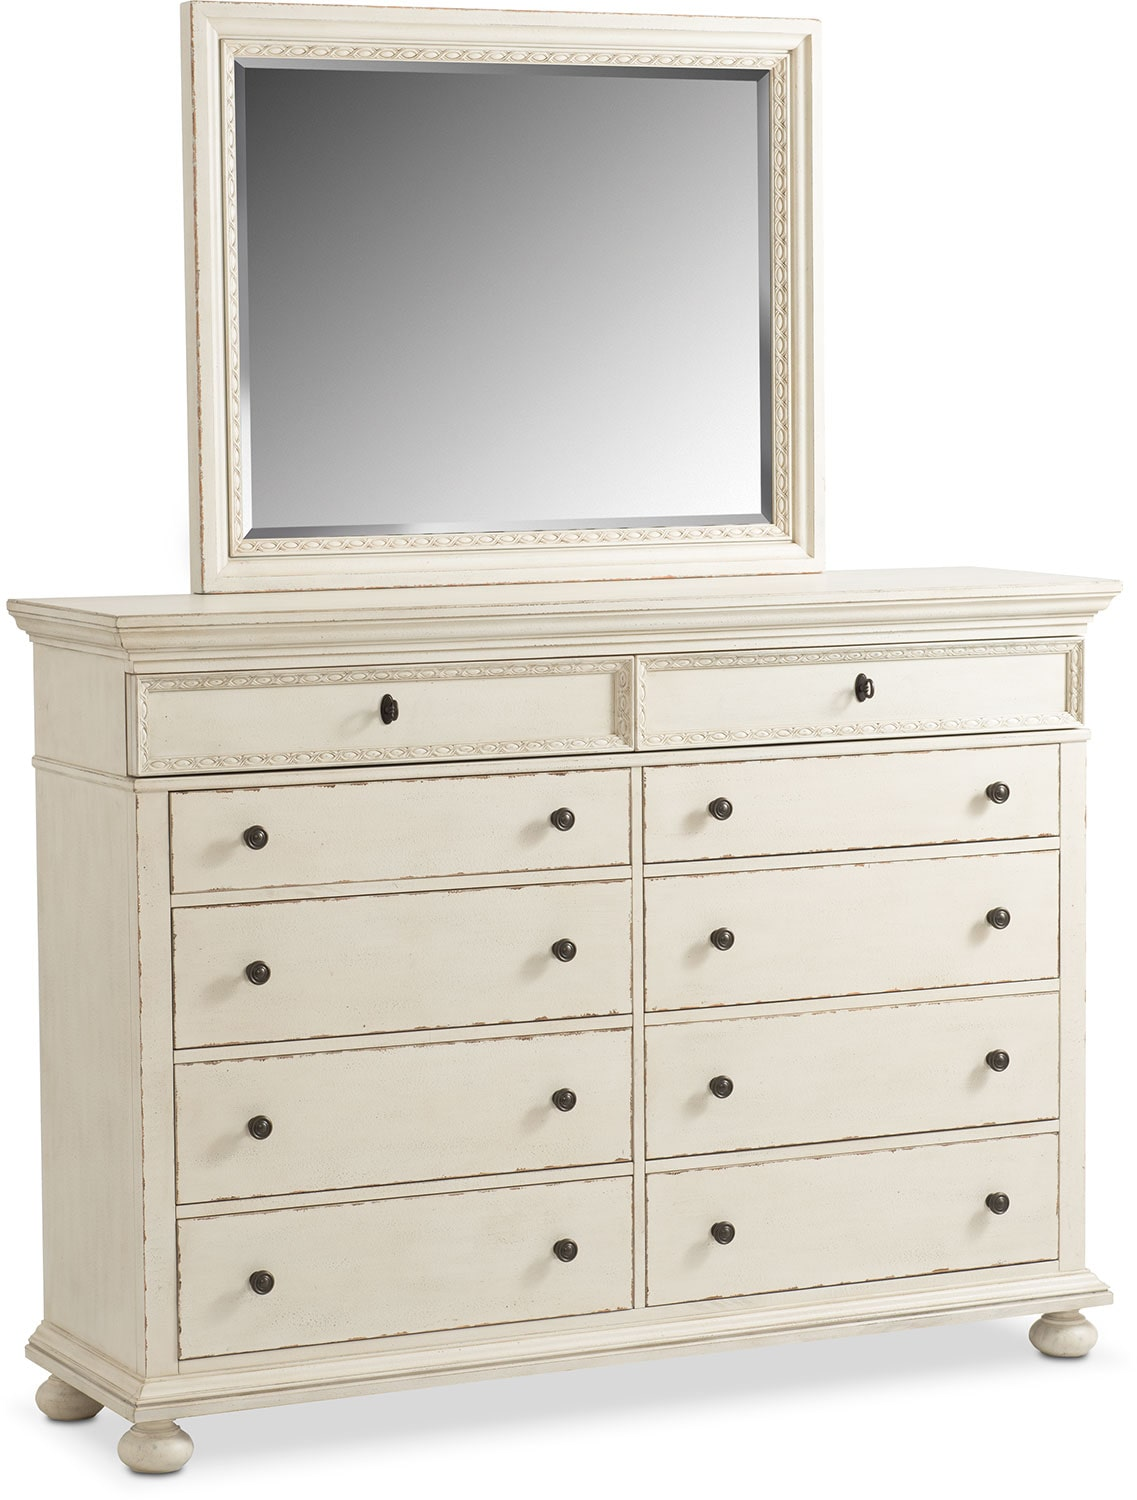 value city furniture dressers shop dressers value city furniture 17690